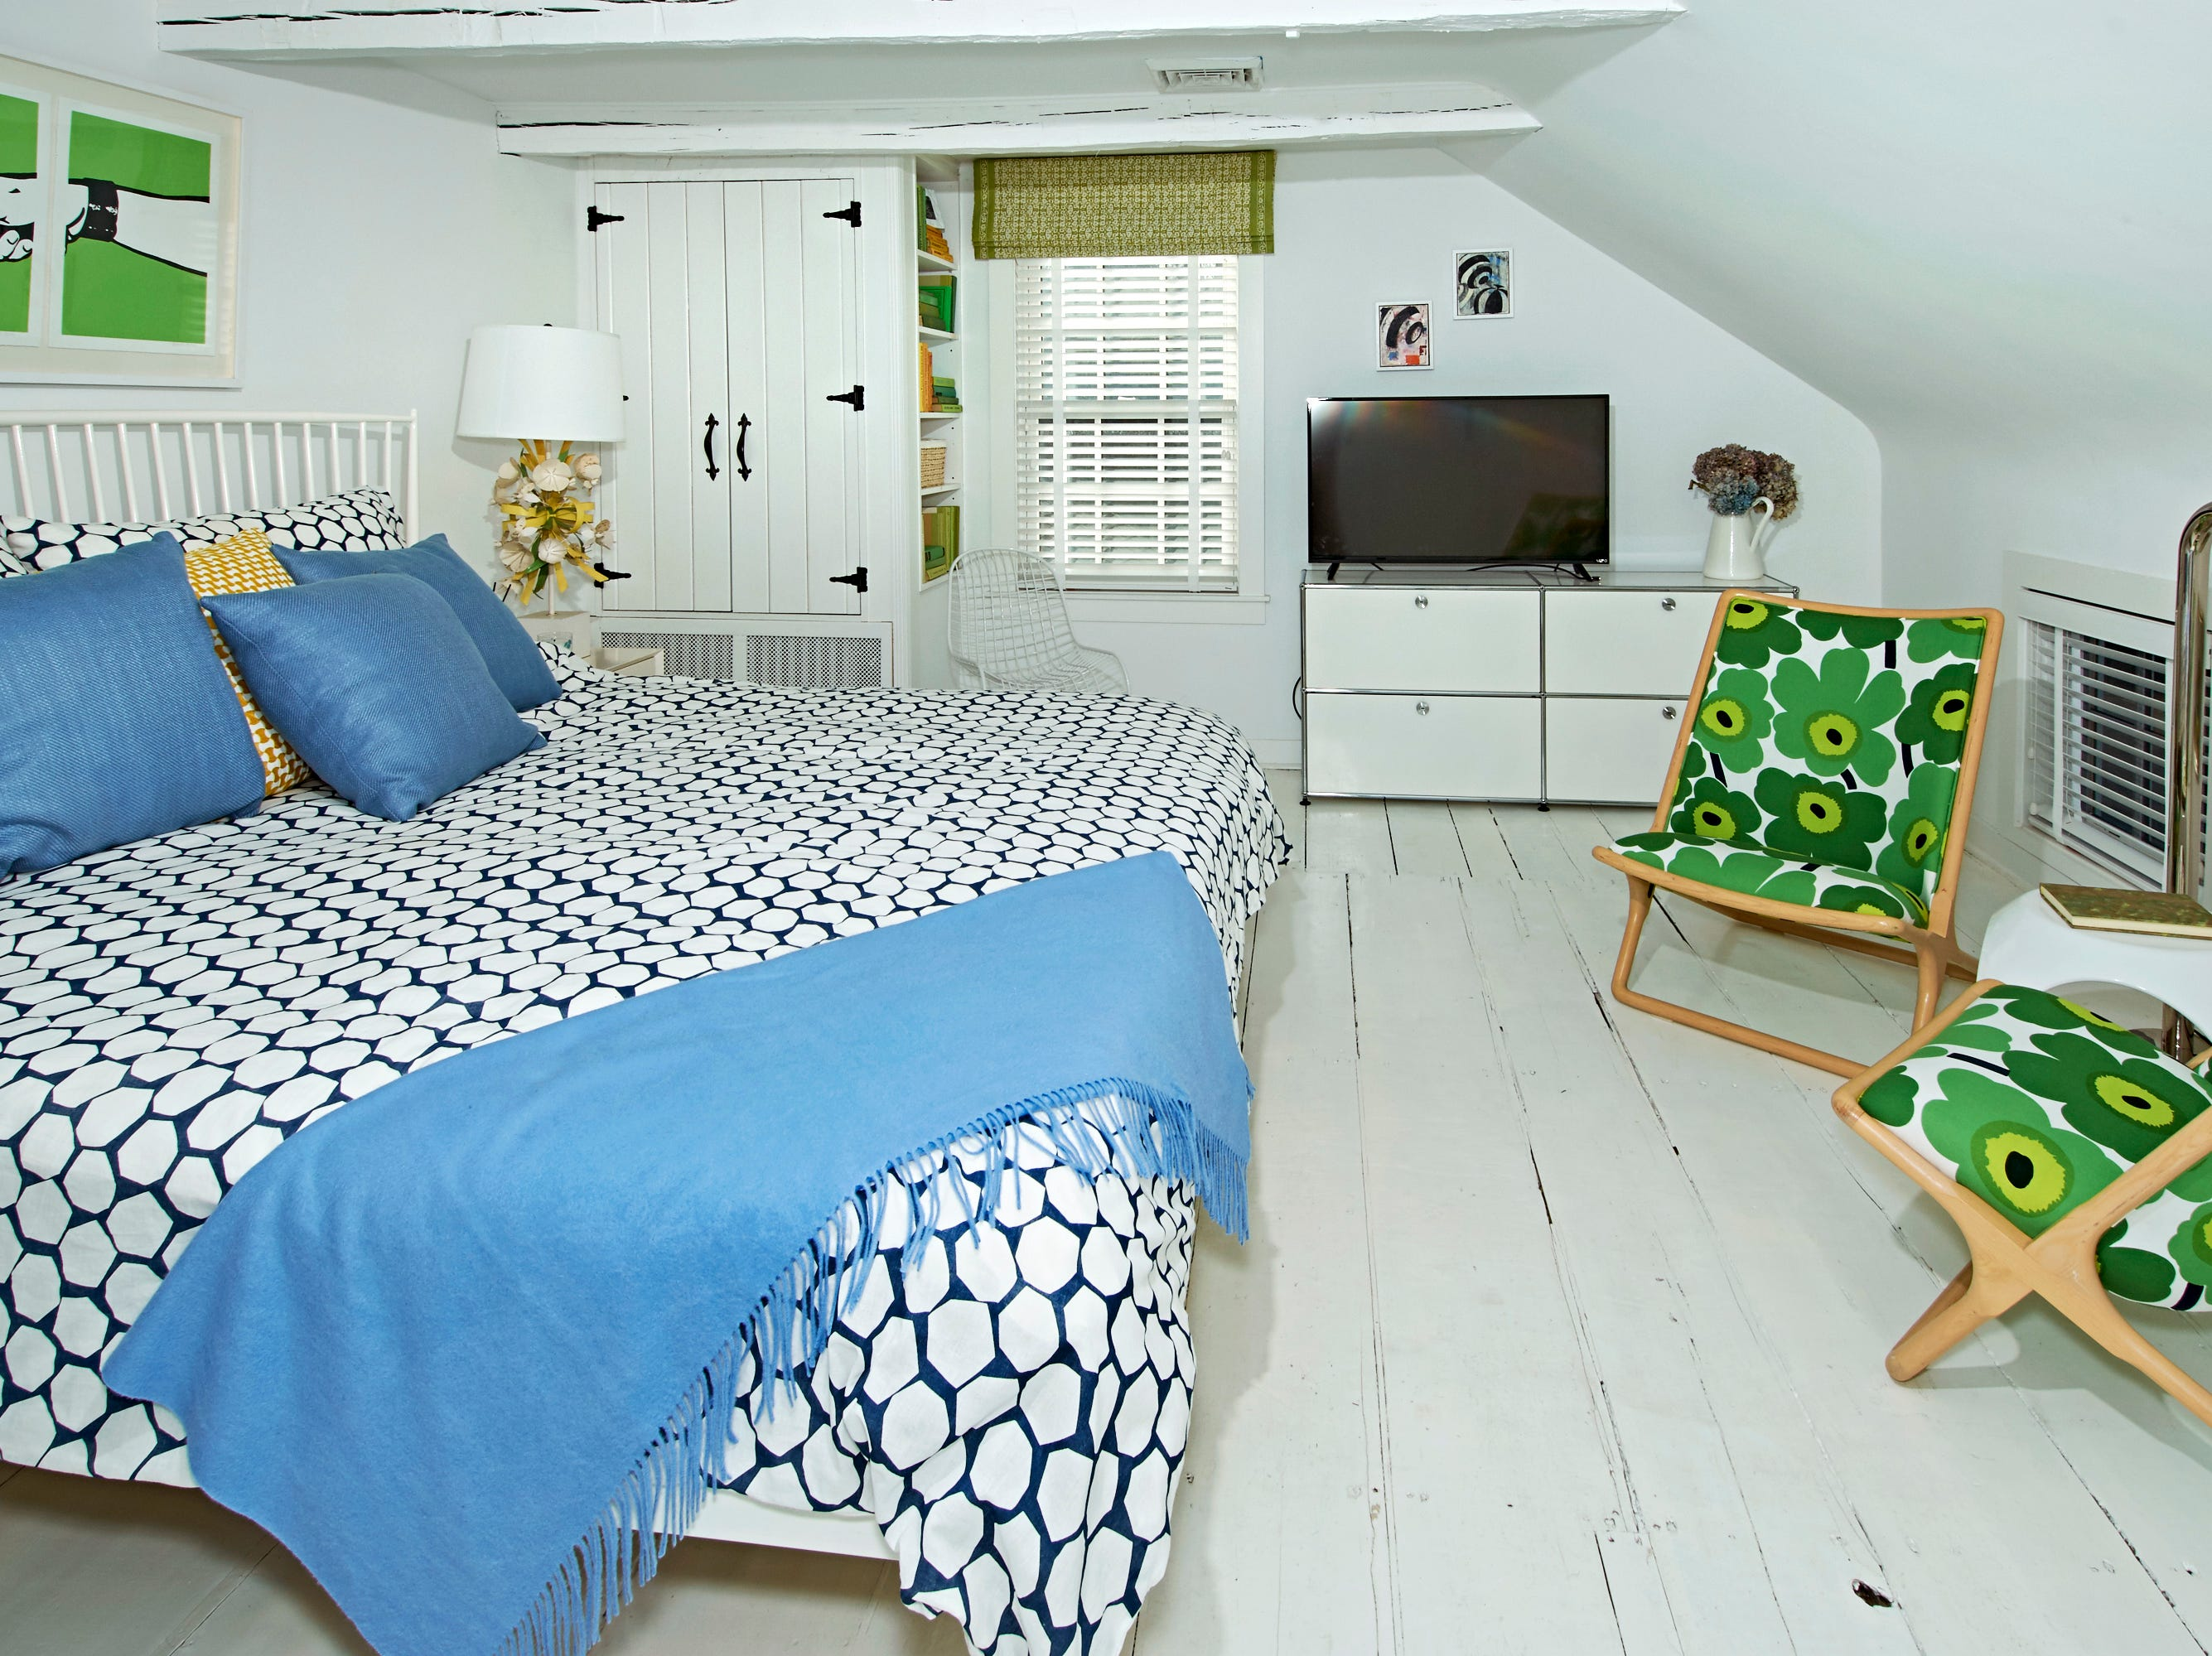 One of the bedrooms. The use of bright colors throughout the all-white home gives it a fresh and fun perspective.